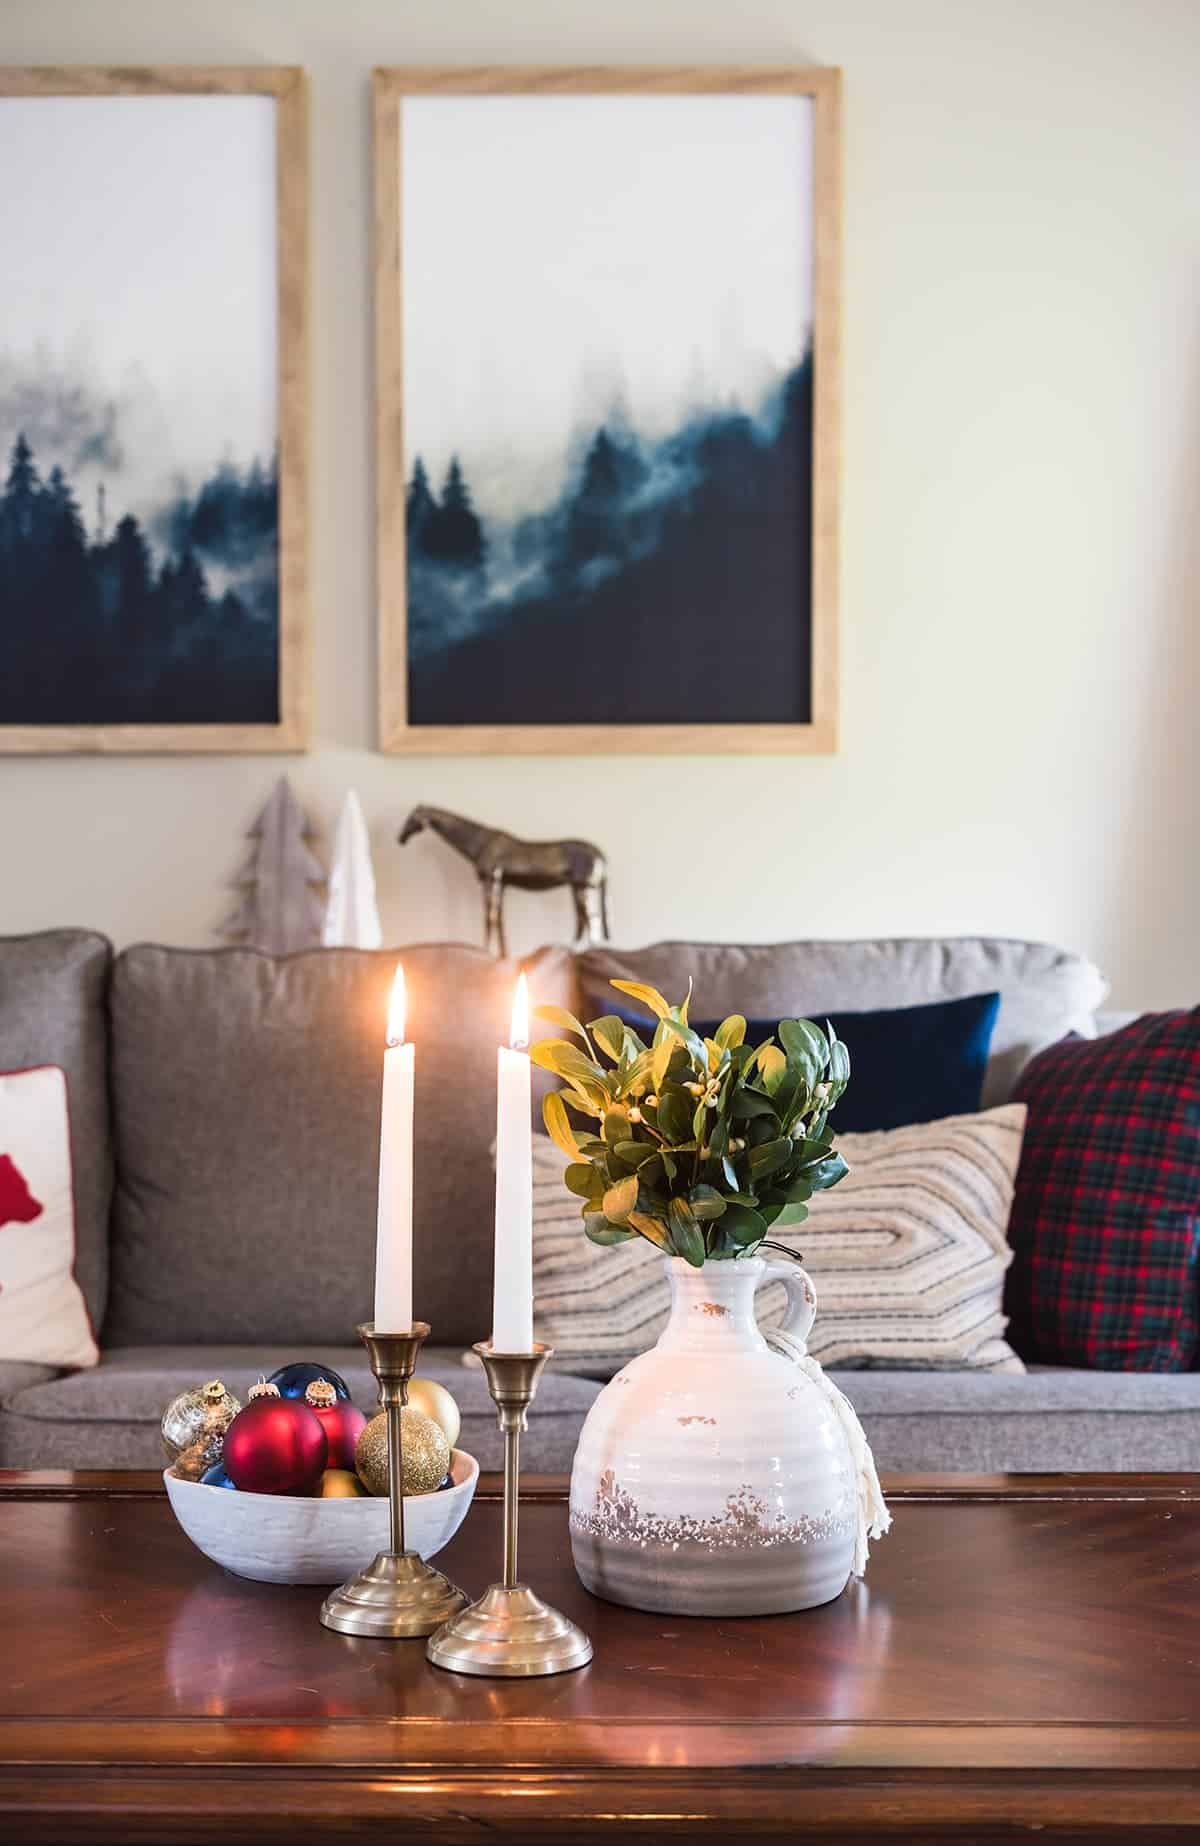 Christmas Coffee Table Styling in living room with touched of blue to pull in the Tartan plaid. Modern traditional.